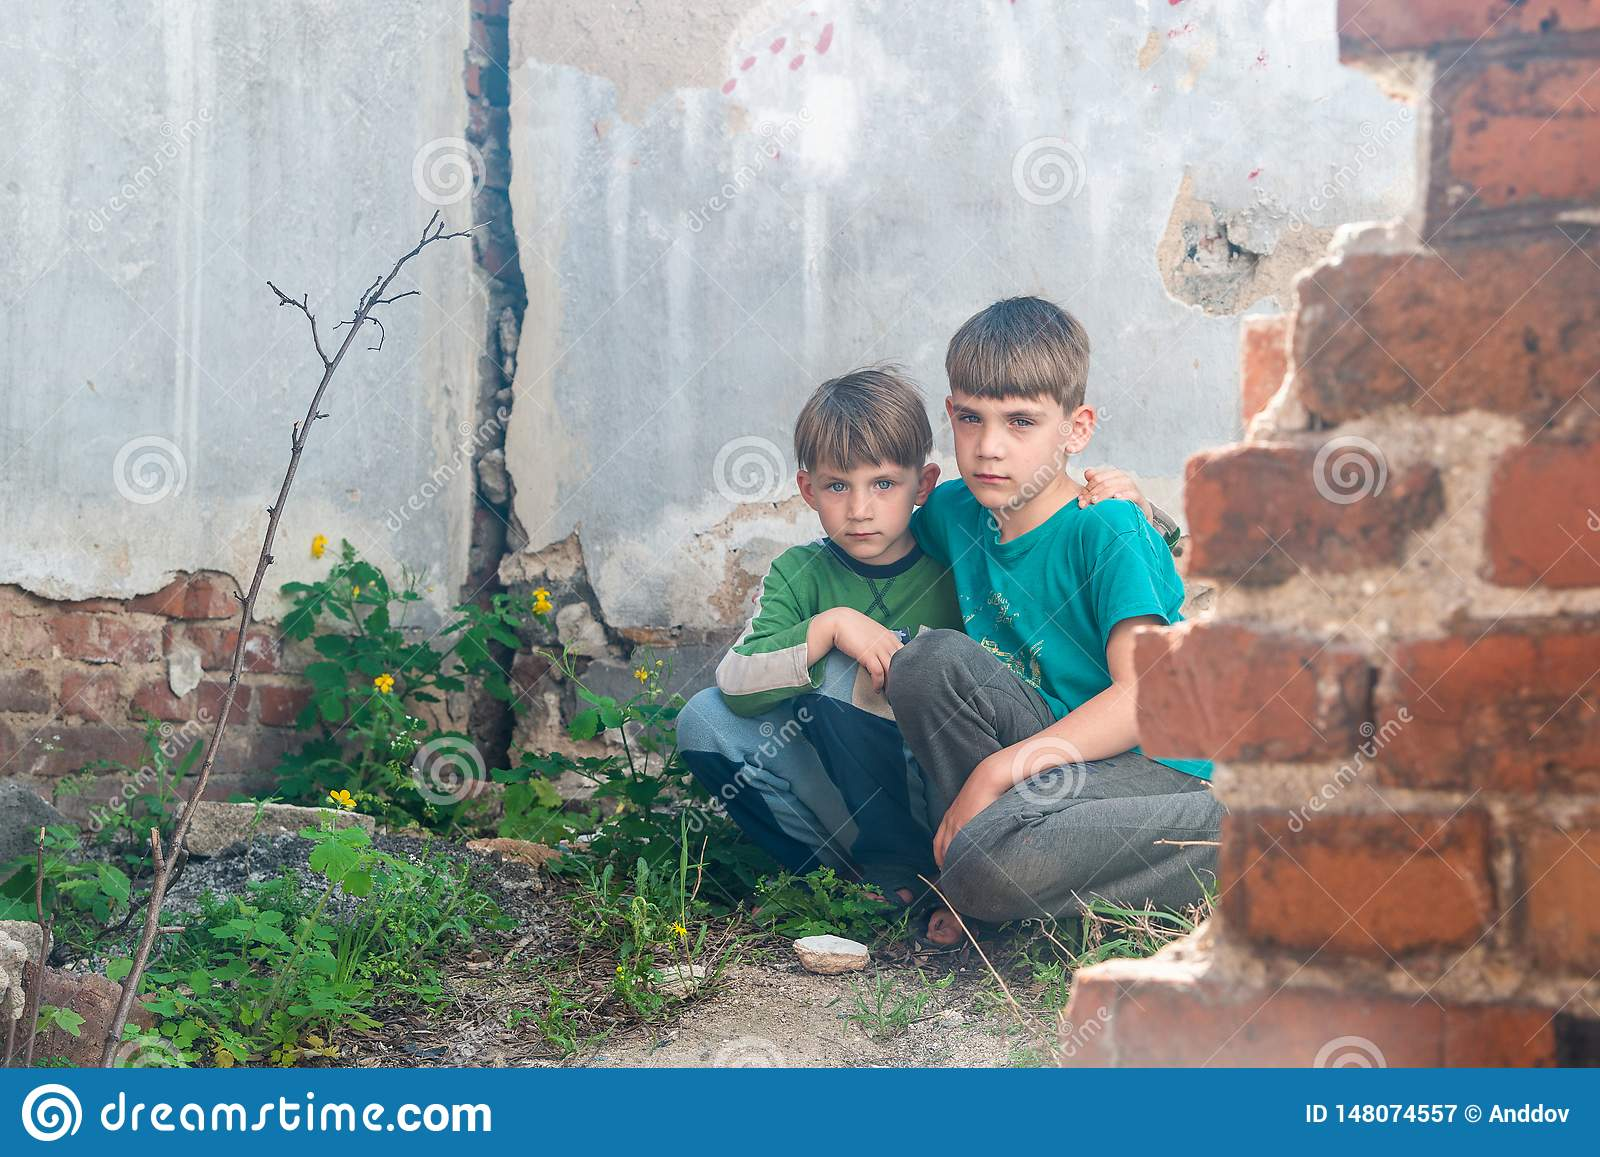 Children in an abandoned house, two poor abandoned boys, orphans as a result of natural disasters and military actions. Submission